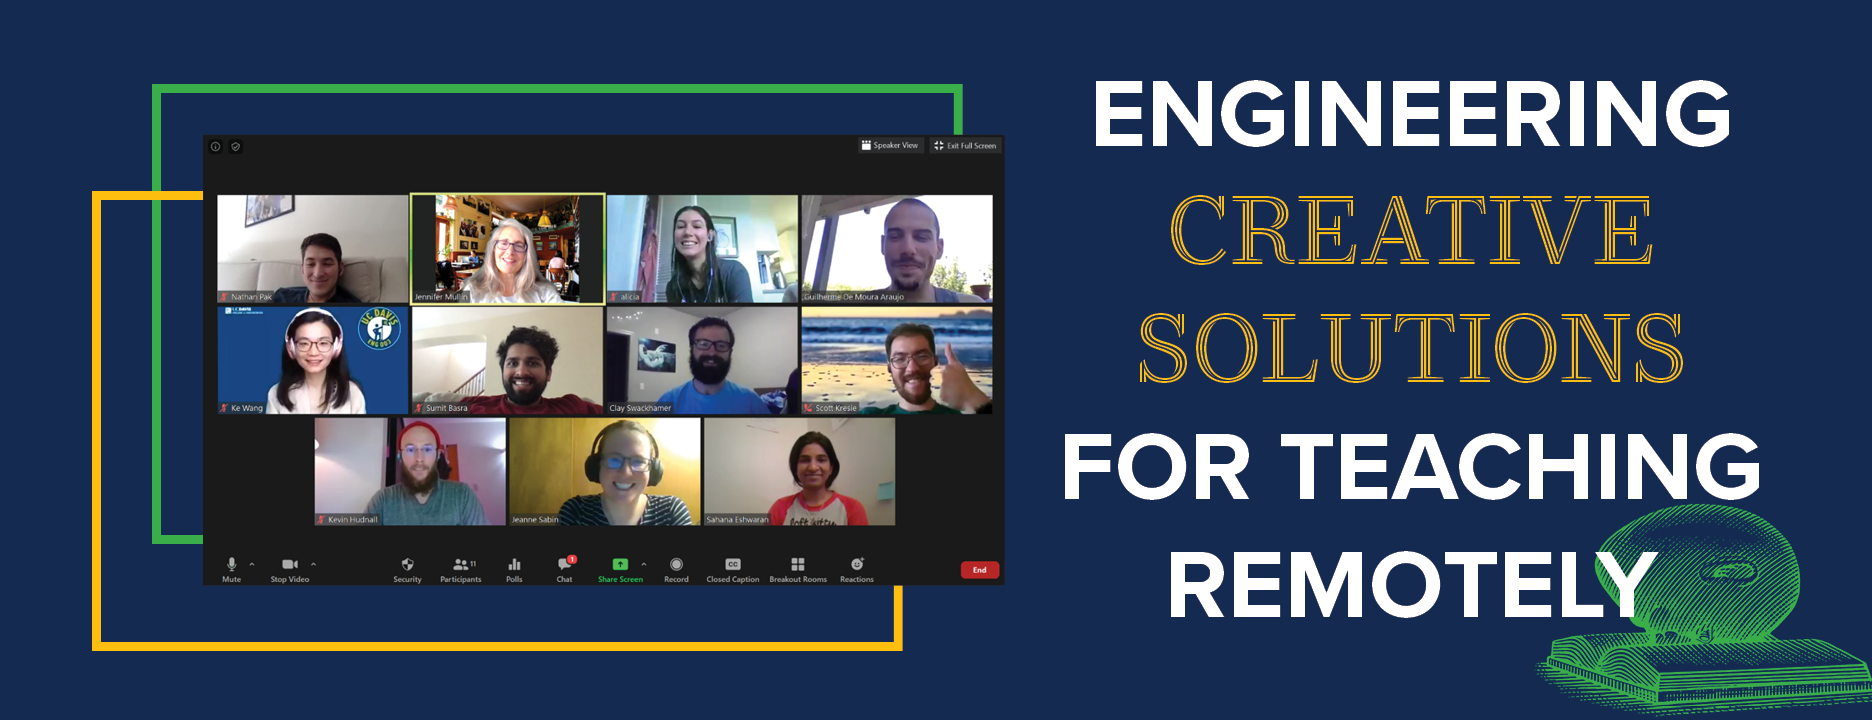 Engineering creative solutions for teaching remotely